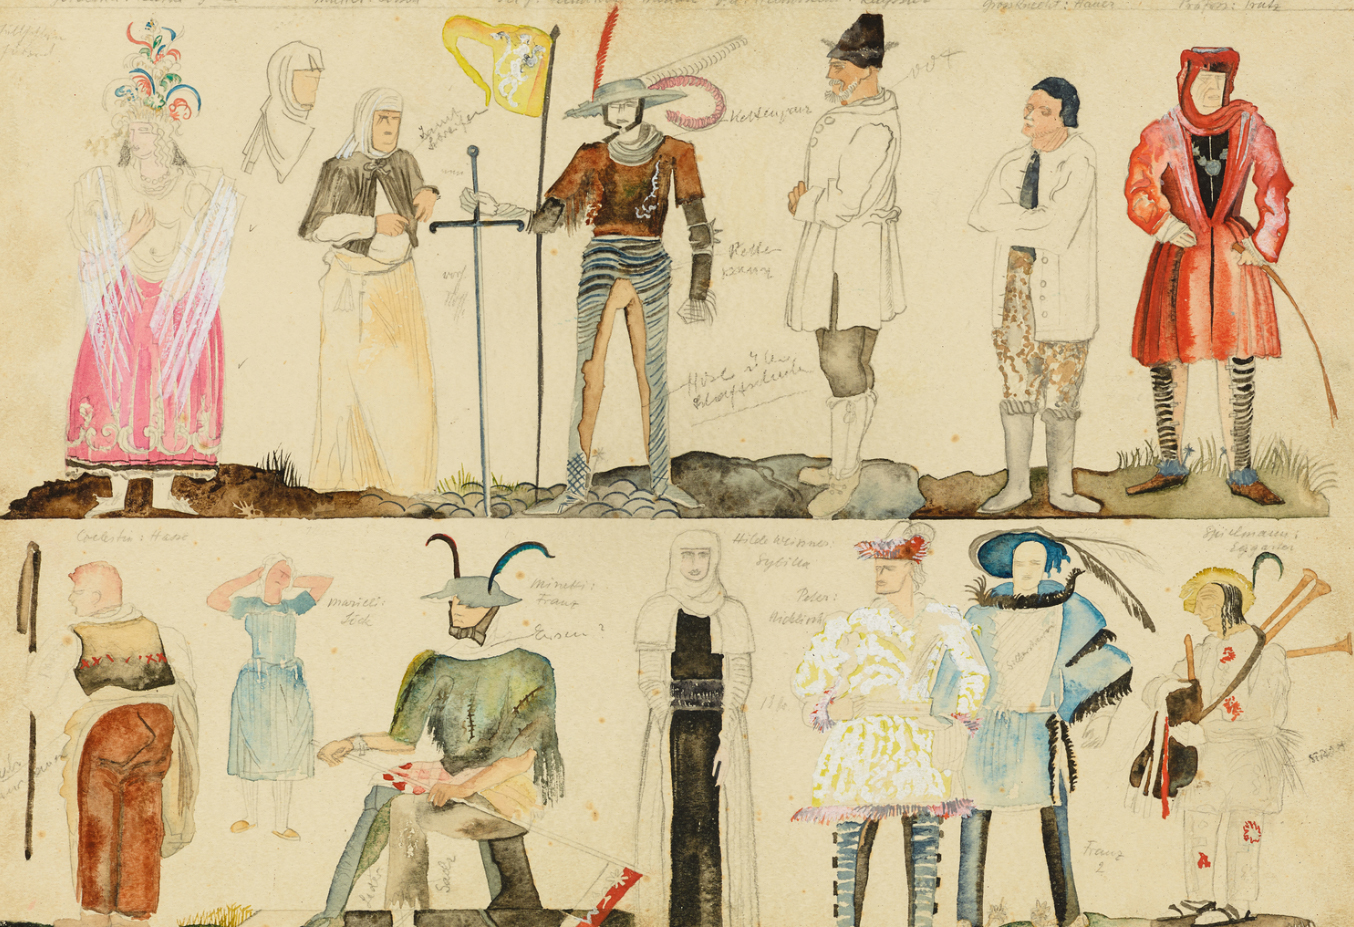 costume design for a theater production, 1934